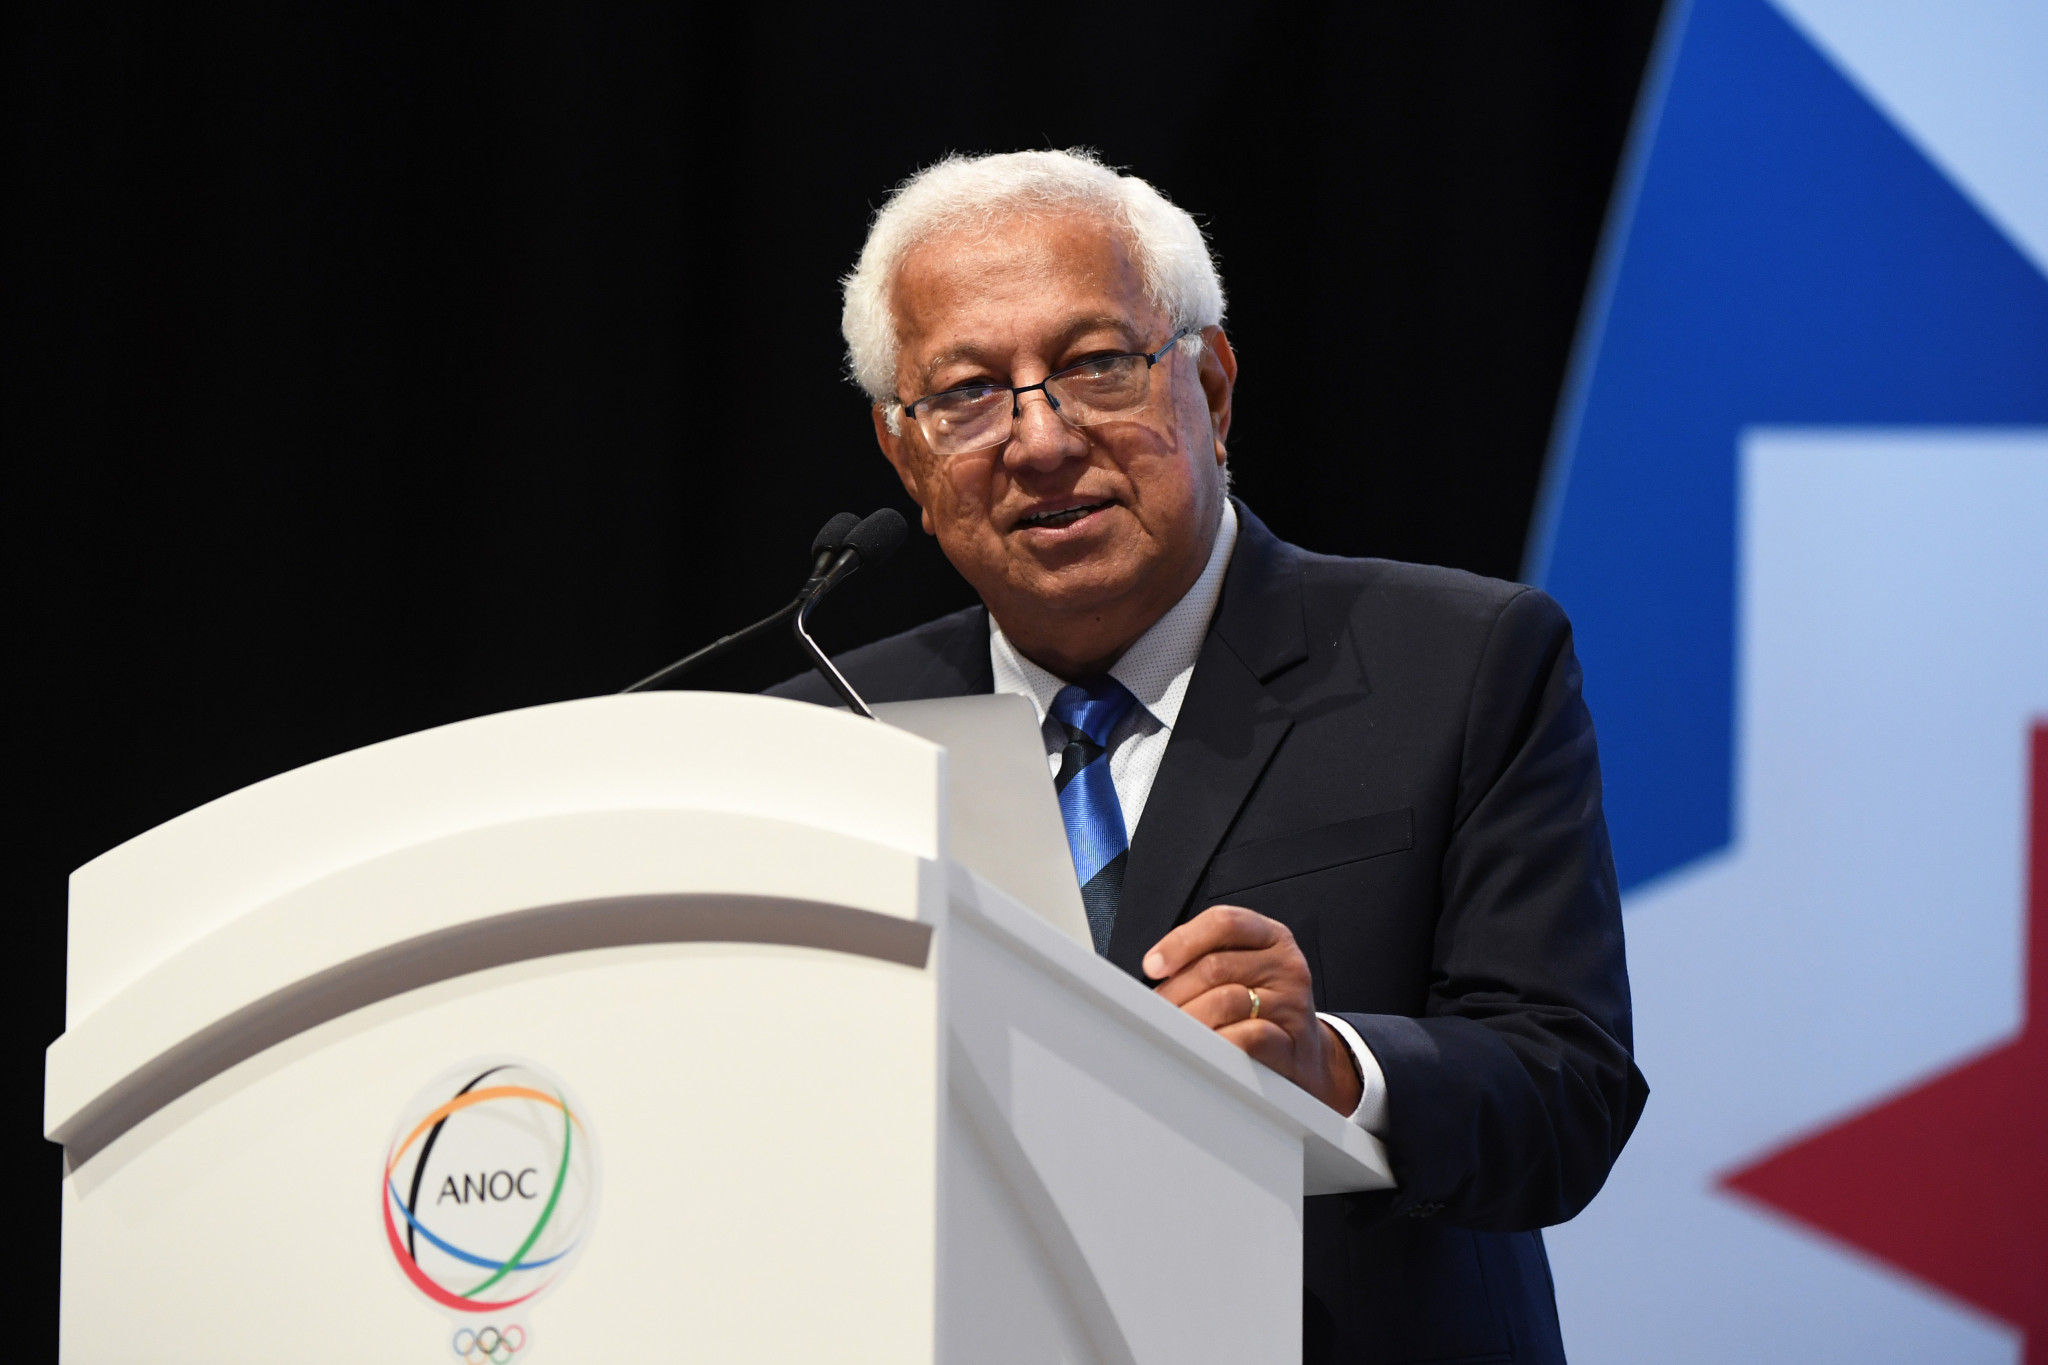 Acting ANOC President Robin Mitchell said there was faith in the IOC and Tokyo 2020 to deliver a safe, secure and sustainable Olympic Games ©Getty Images